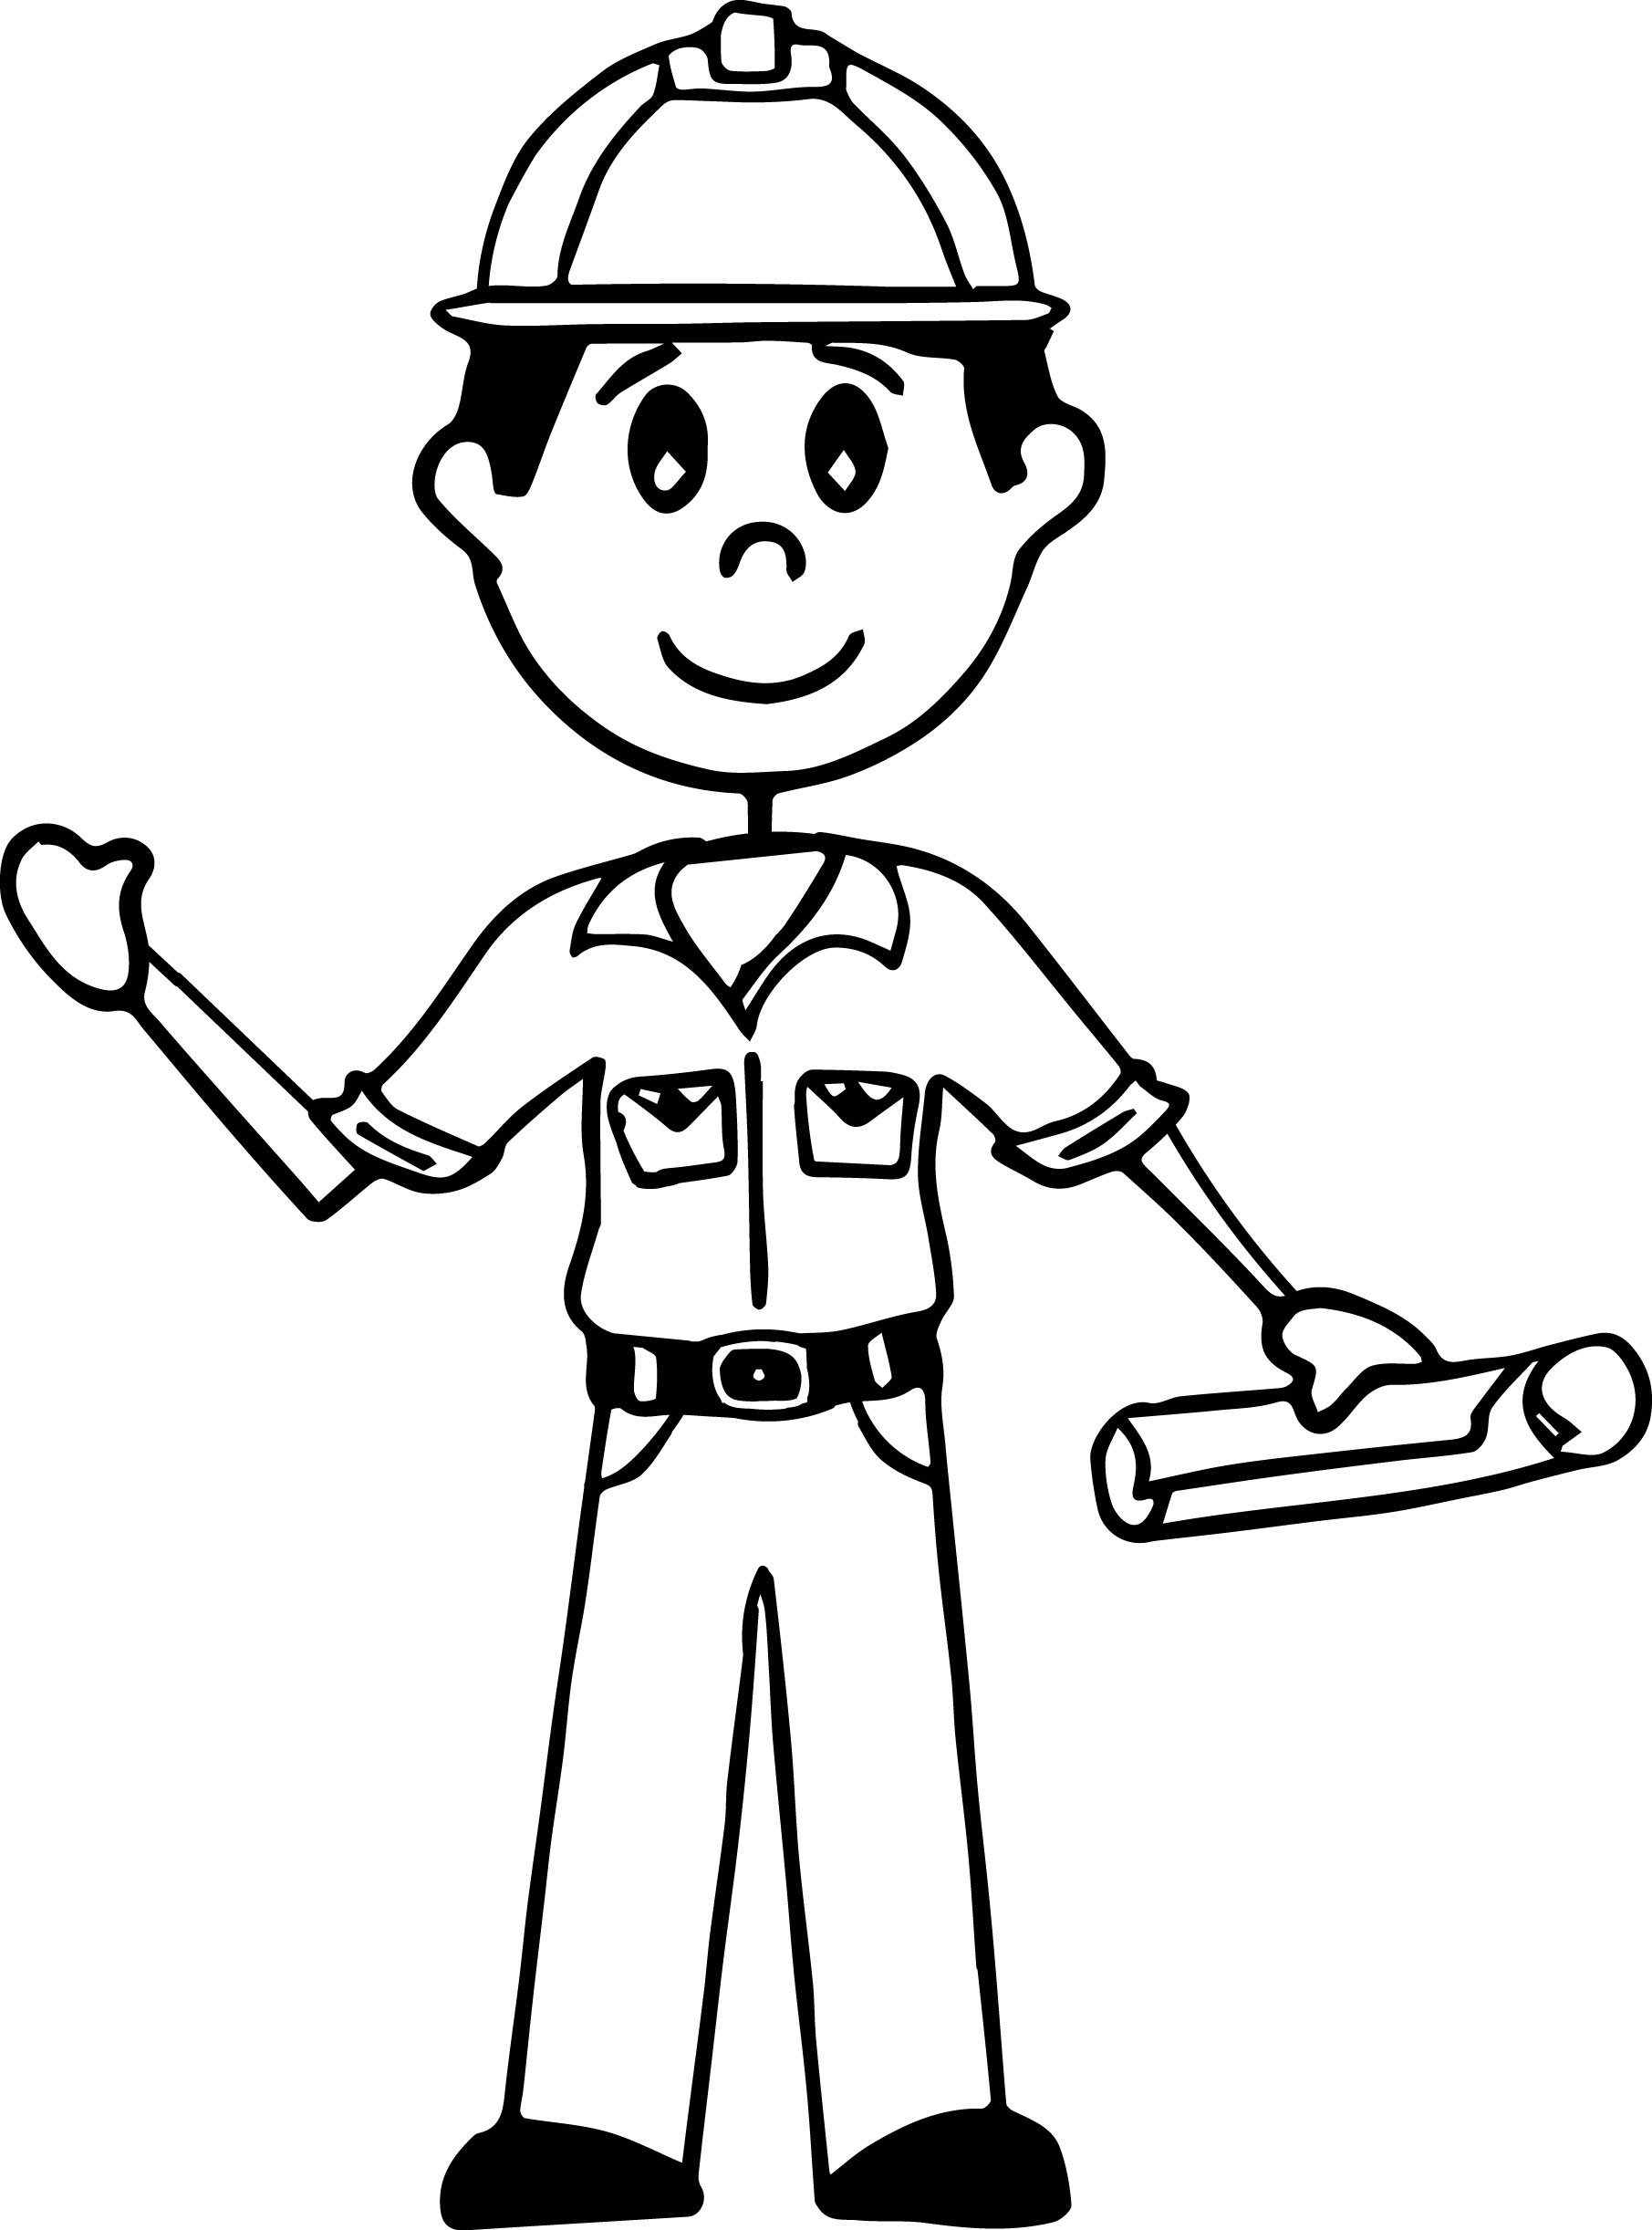 1811x2444 Perfect Stick Man Coloring Pages Luxury Figure Composition Page